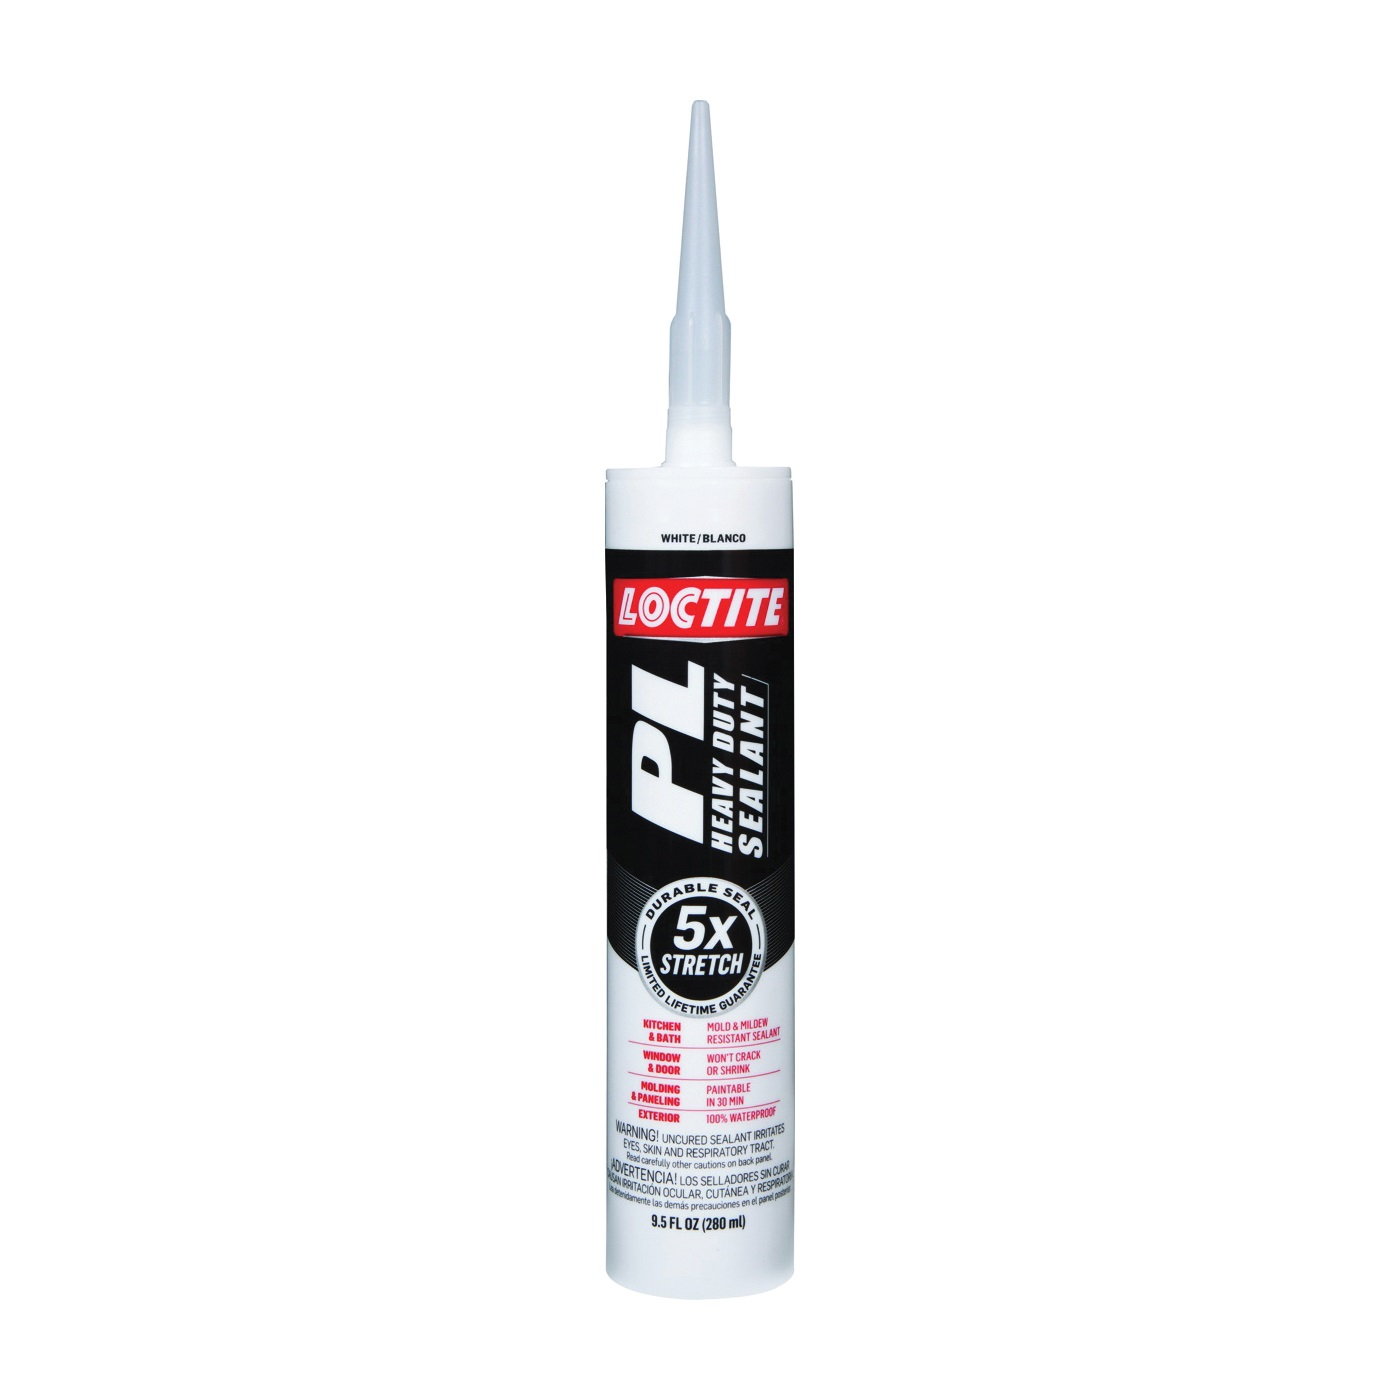 Picture of Loctite 2141743 Sealant, Tan/White, 24 to 72 hr Curing, 0 to 140 deg F, 9.5 oz Package, Cartridge